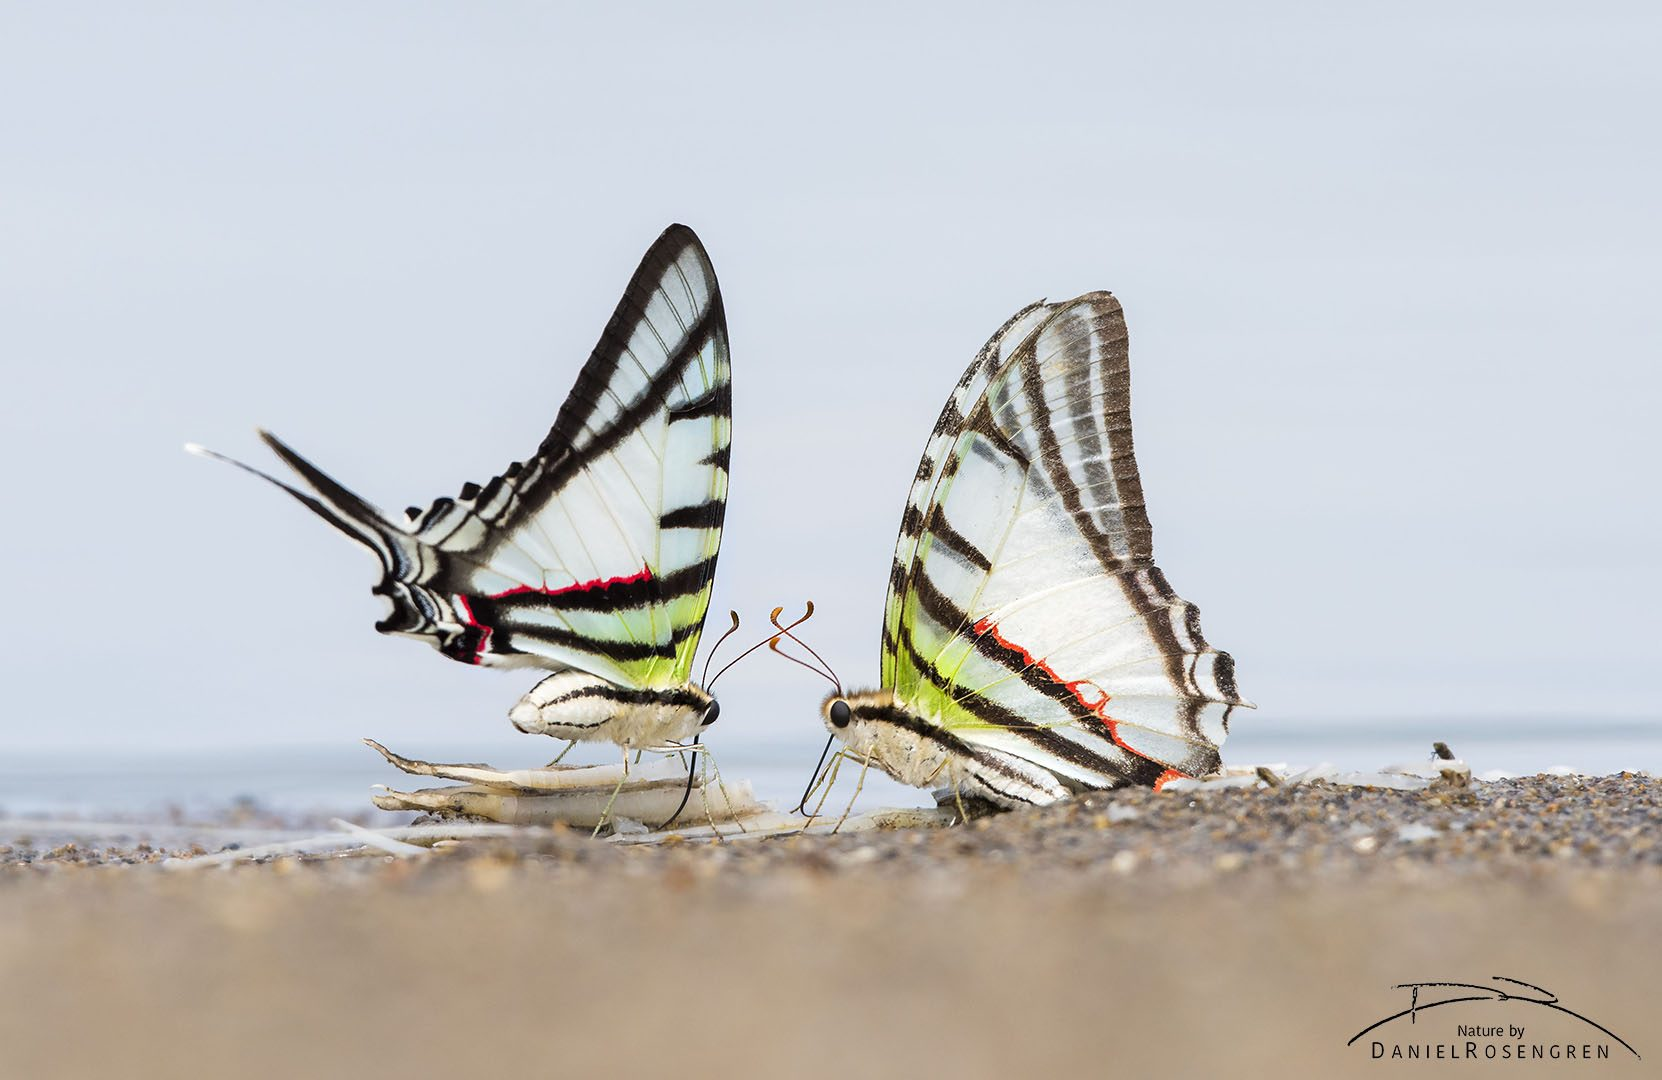 Two butterflies licking minerals from fish leftovers near Yaguas, Peru. © Daniel Rosengren